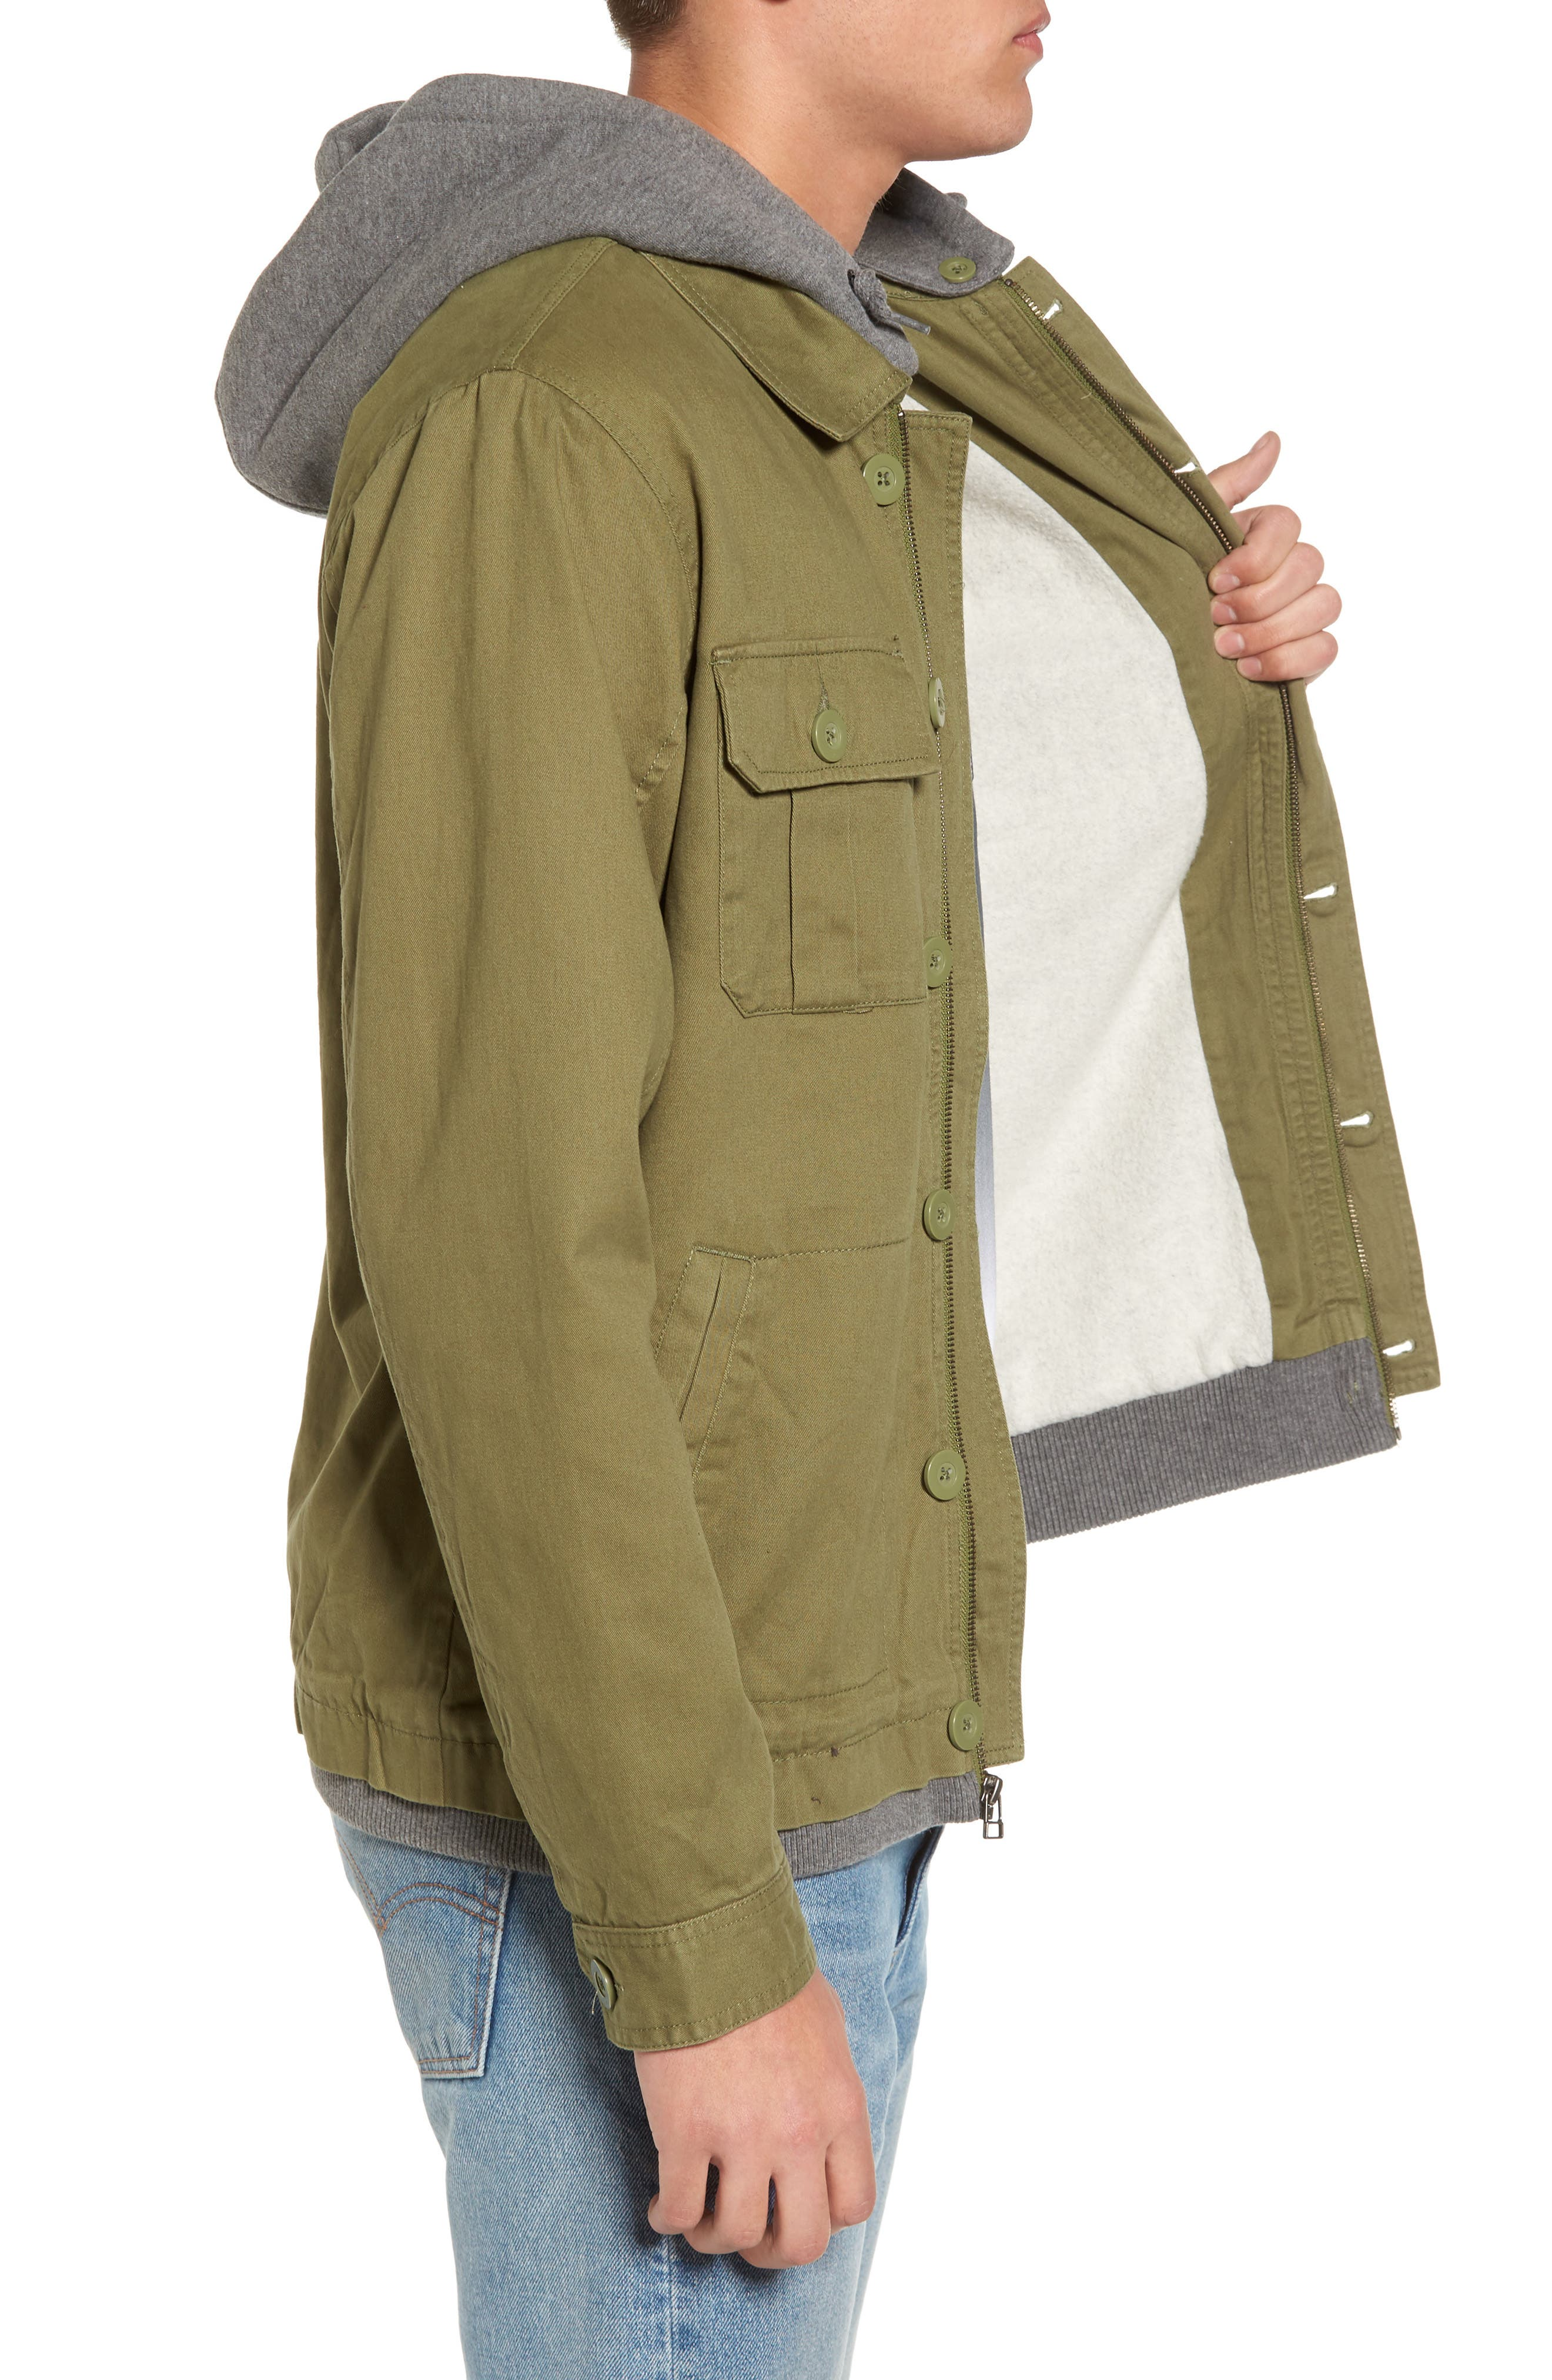 Droogs Field Jacket with Detachable Hood,                             Alternate thumbnail 3, color,                             001